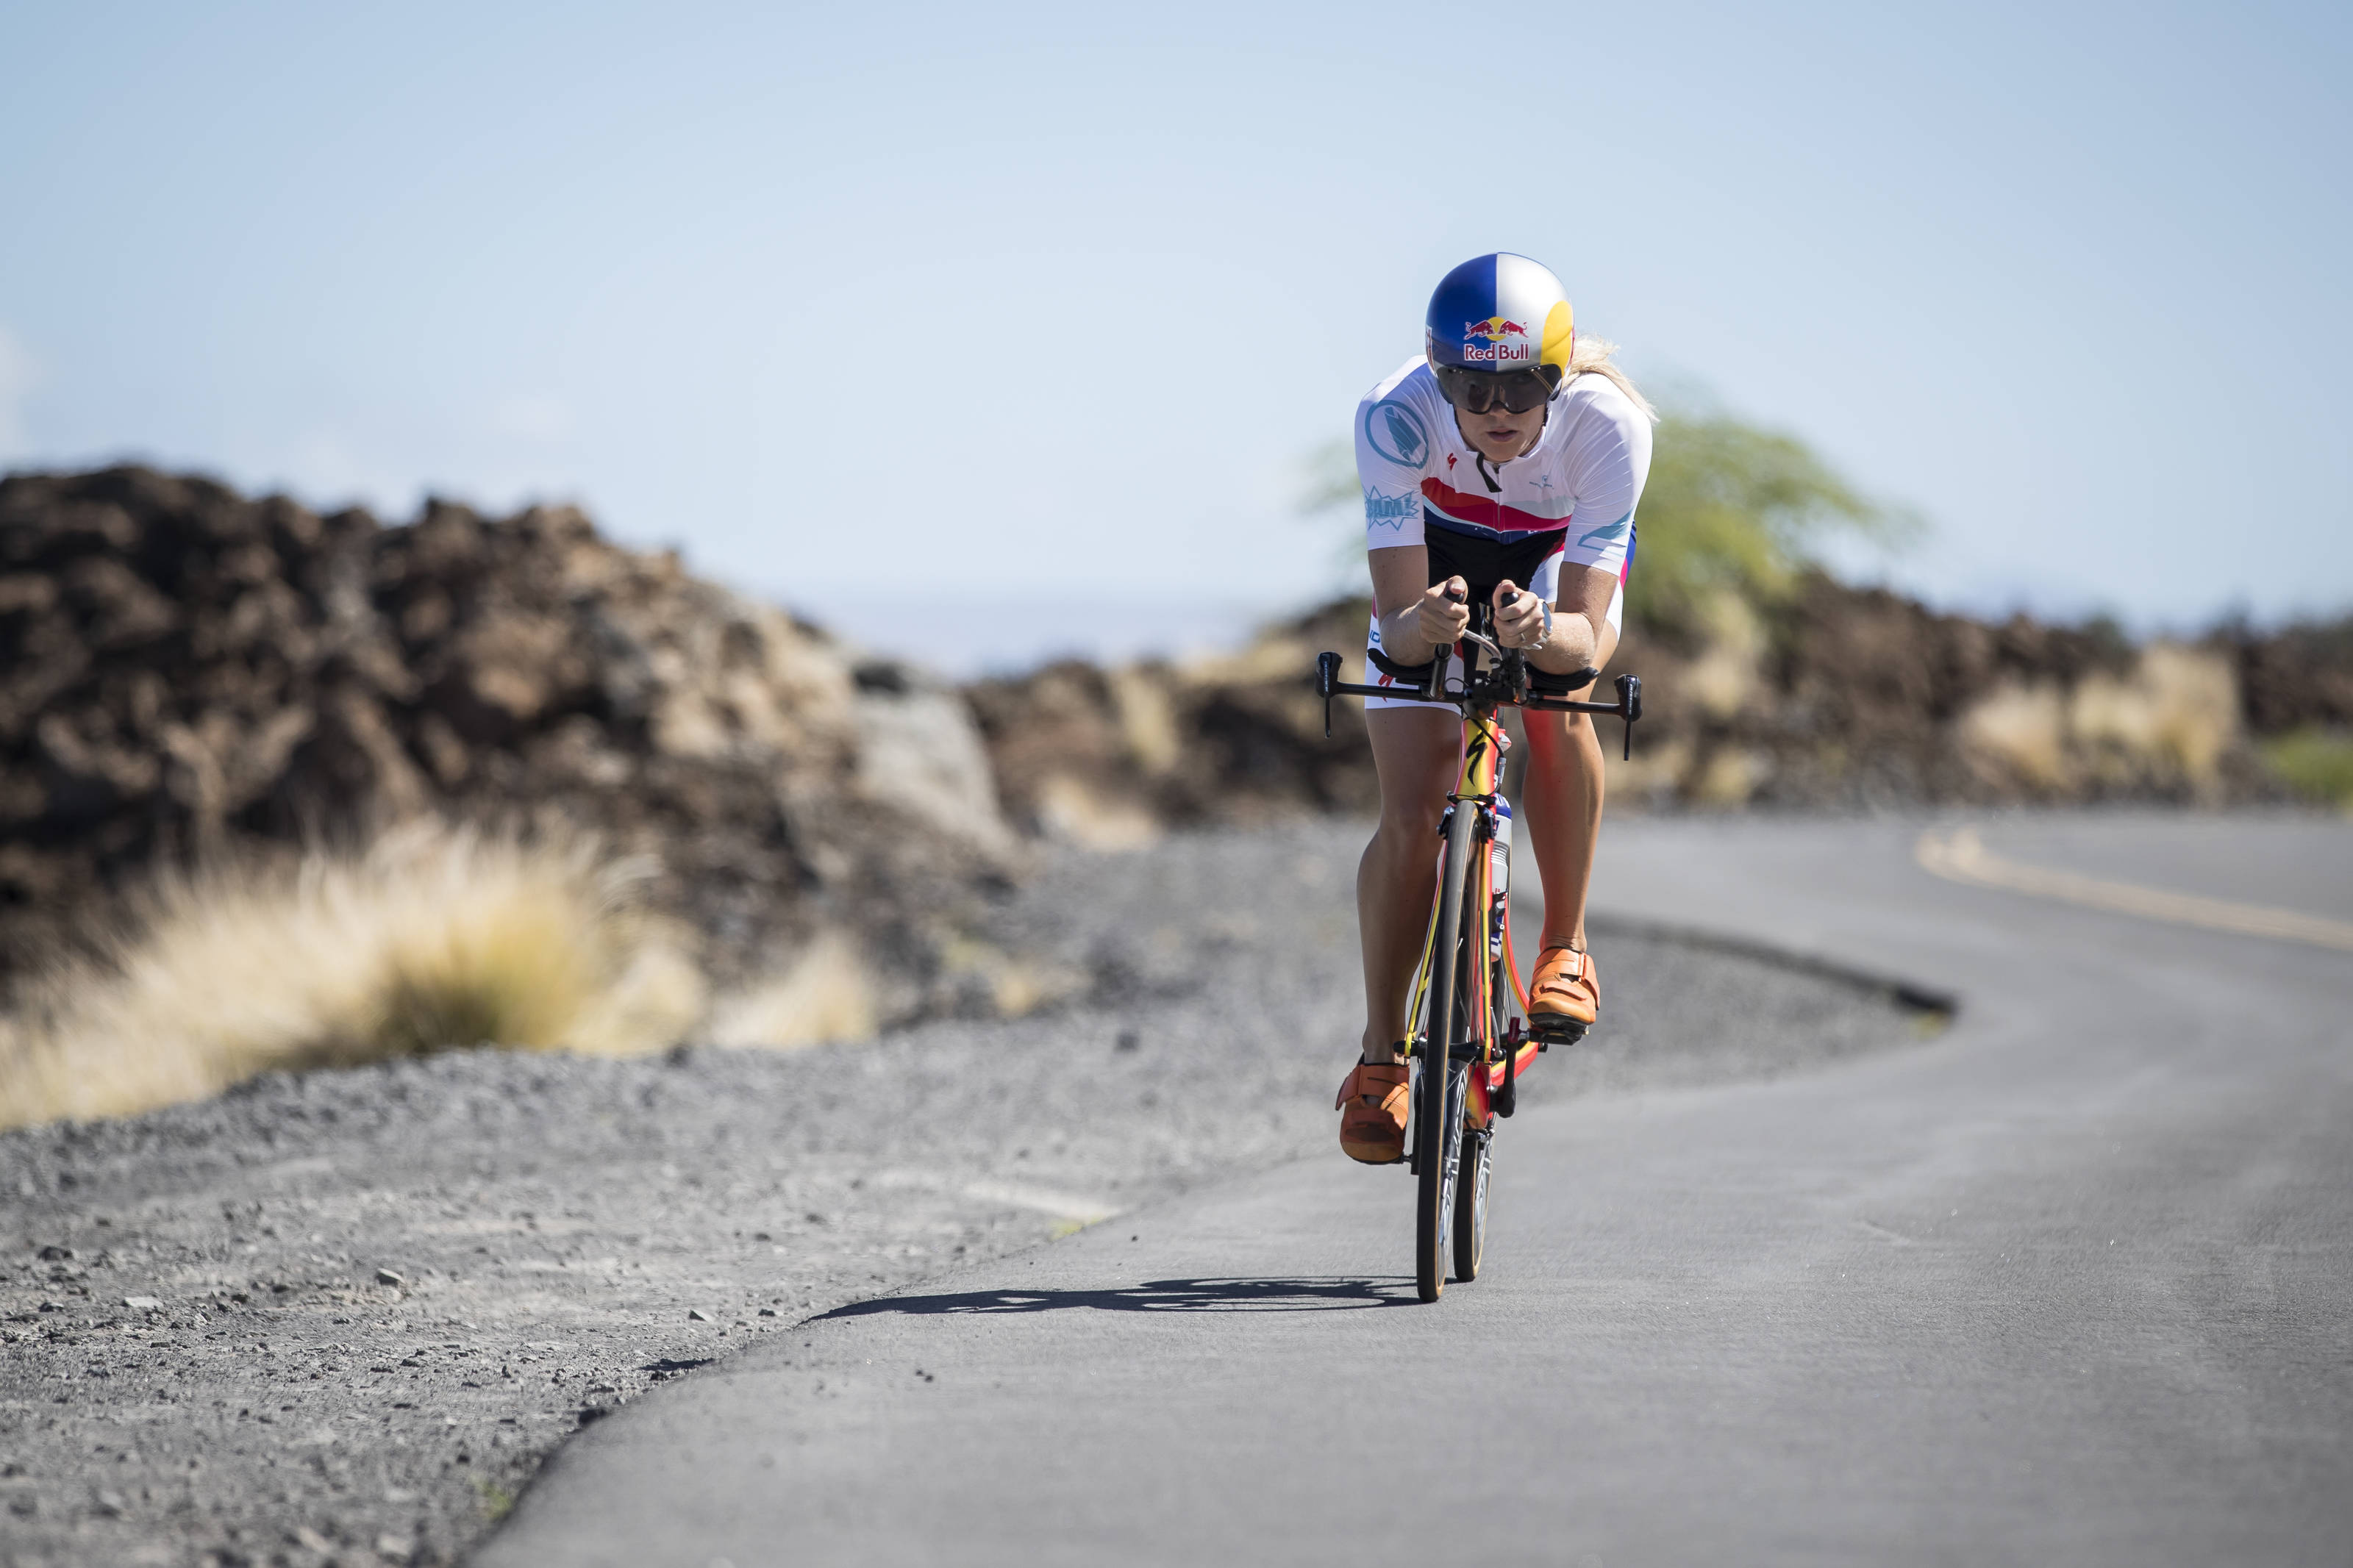 Ironman's Lucy Charles: 'I just love the pain' - Lessons In